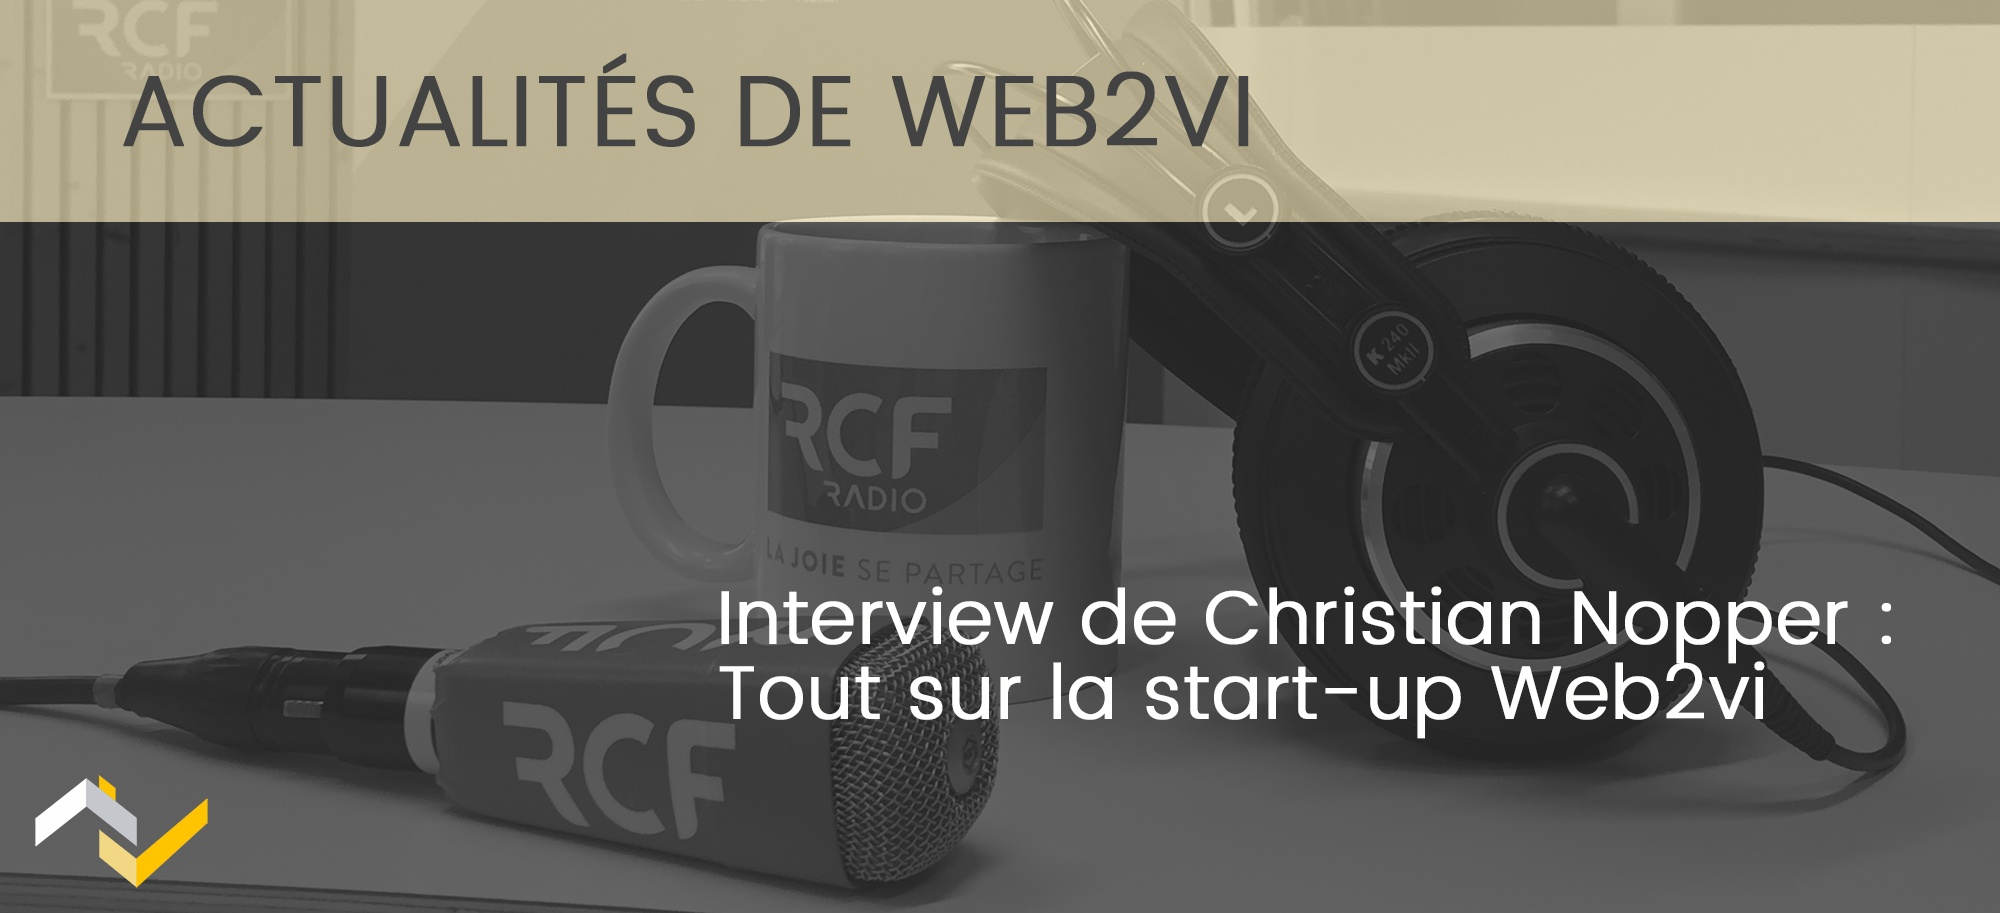 Interview de Christian Nopper : Tout sur la start-up Web2vi